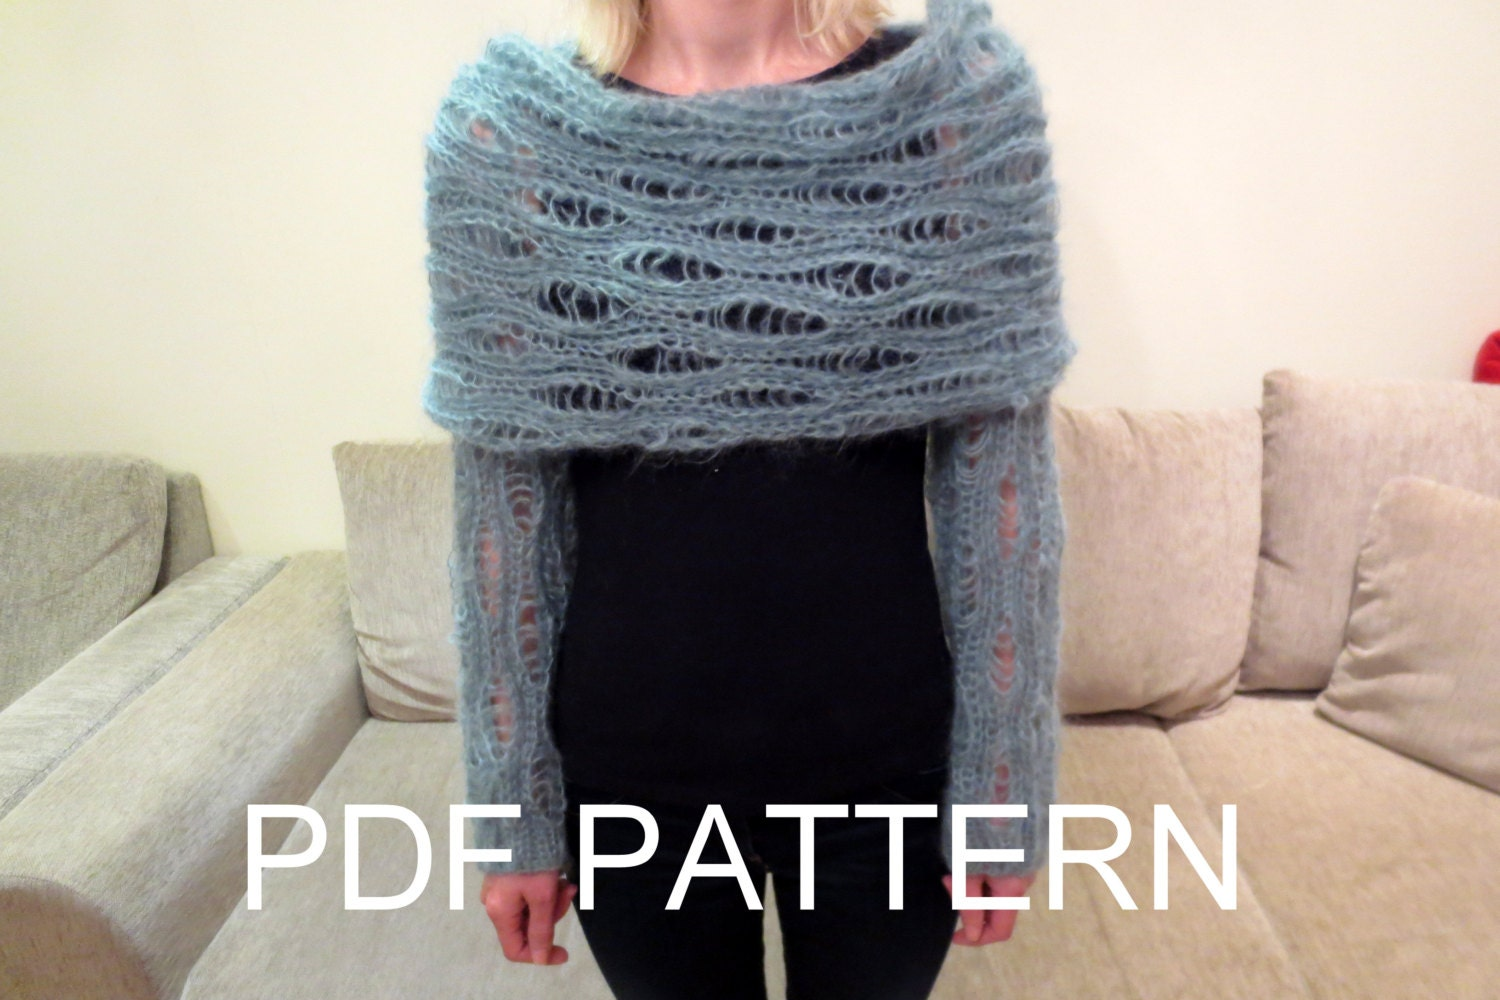 Knitting Pattern Scarf With Sleeves : PDF KNITTING PATTERN for long sleeves lace scarf sweater